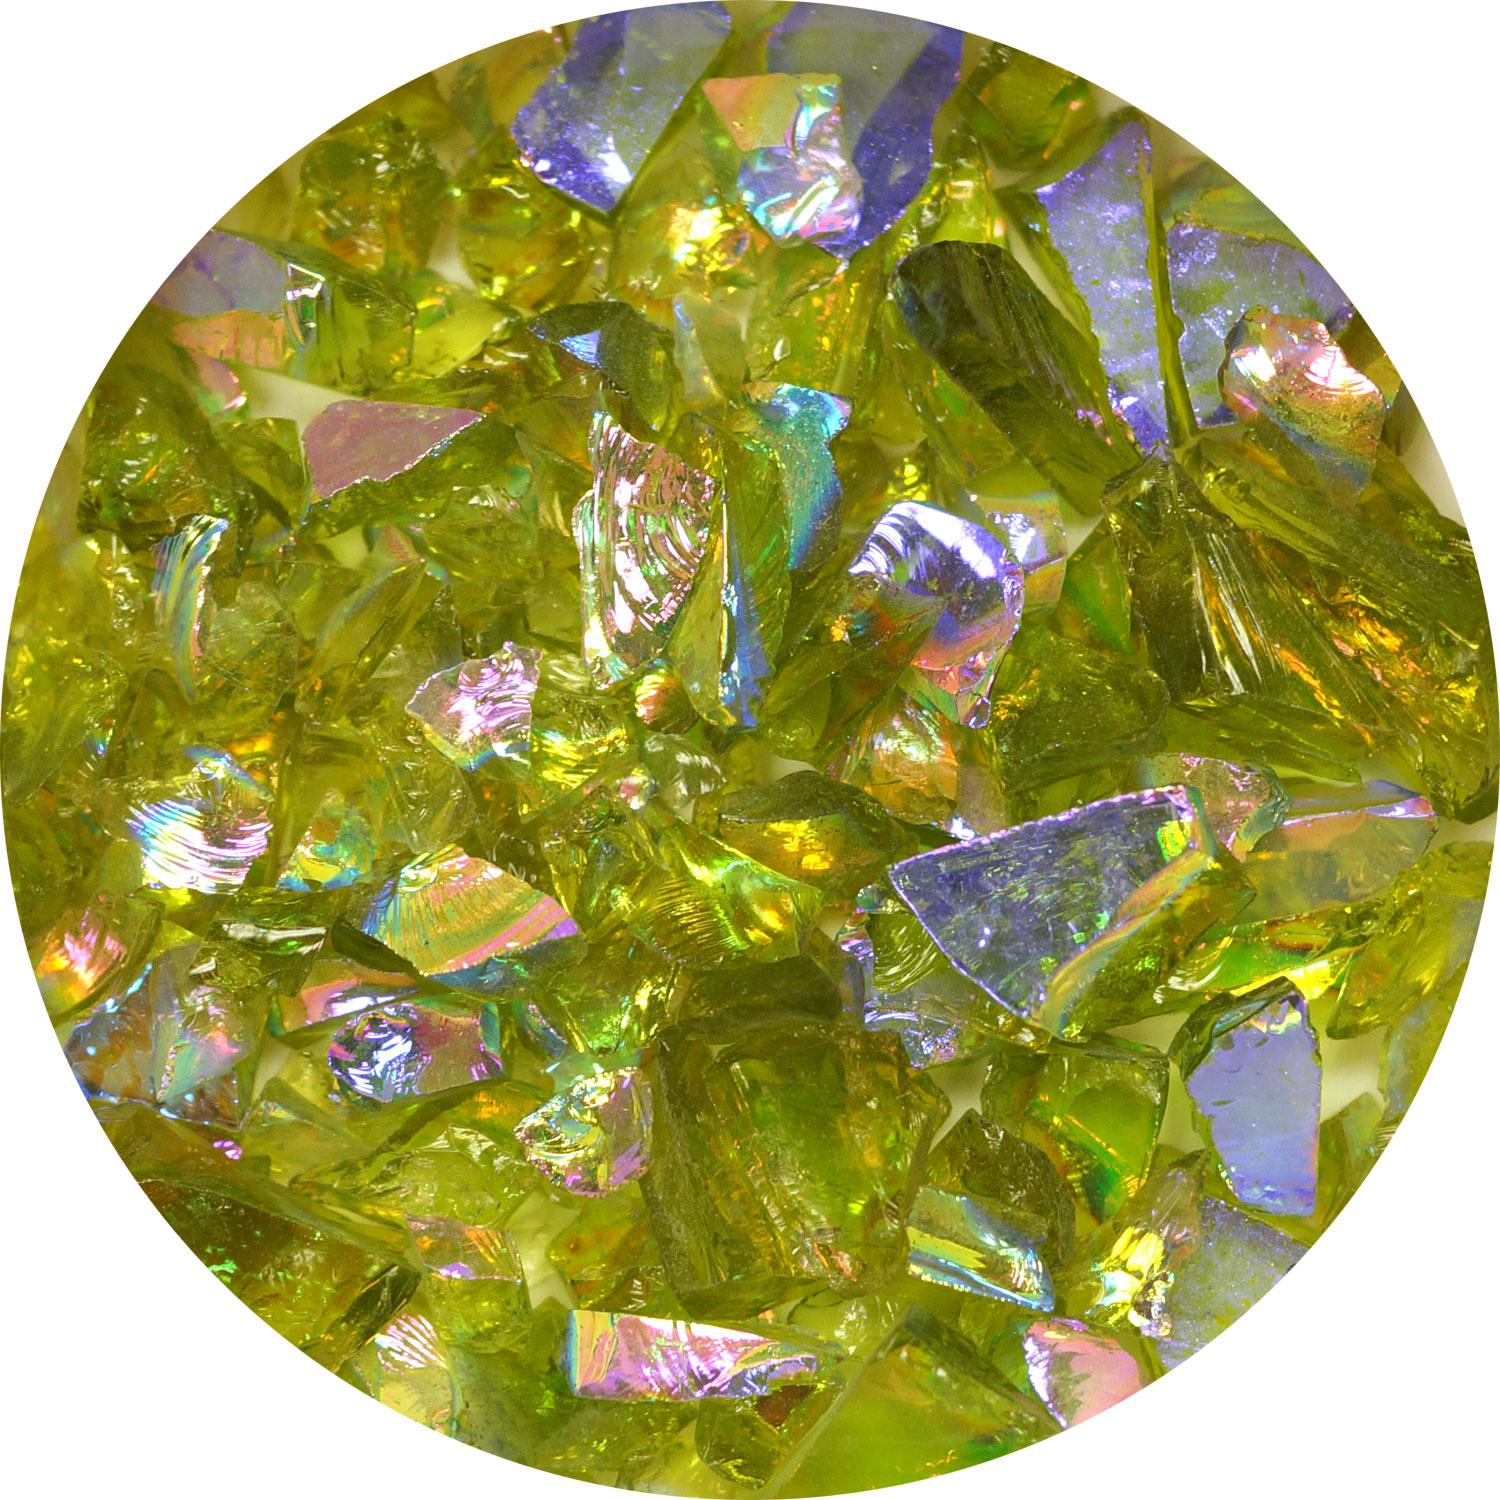 3 oz. Yellow Green/Magenta Dichroic Frit on Transparent Lime Green - 90 COE